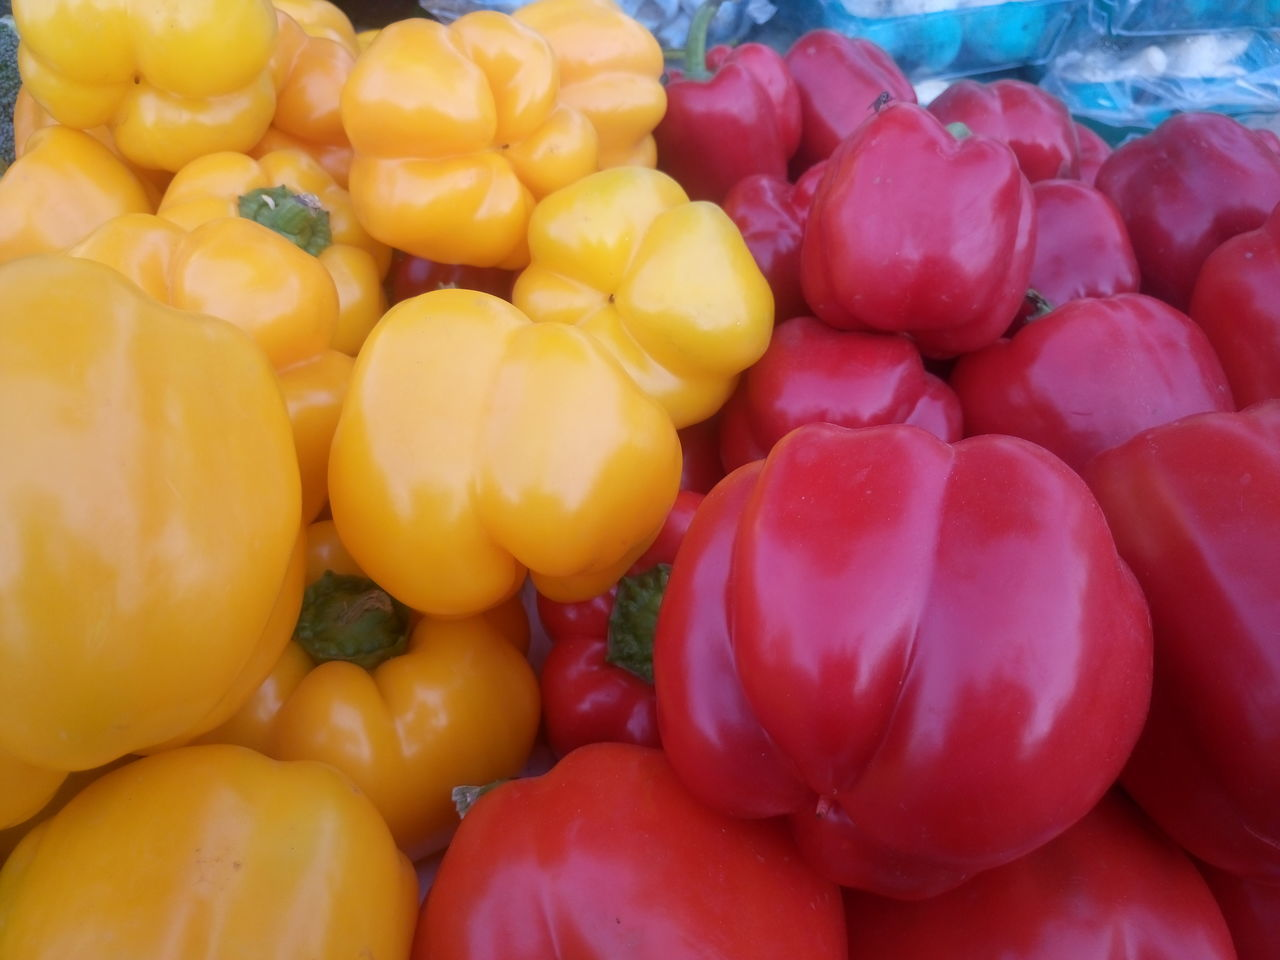 vegetable, food and drink, food, abundance, healthy eating, for sale, bell pepper, red bell pepper, no people, market stall, retail, variation, market, large group of objects, full frame, freshness, choice, day, backgrounds, multi colored, outdoors, close-up